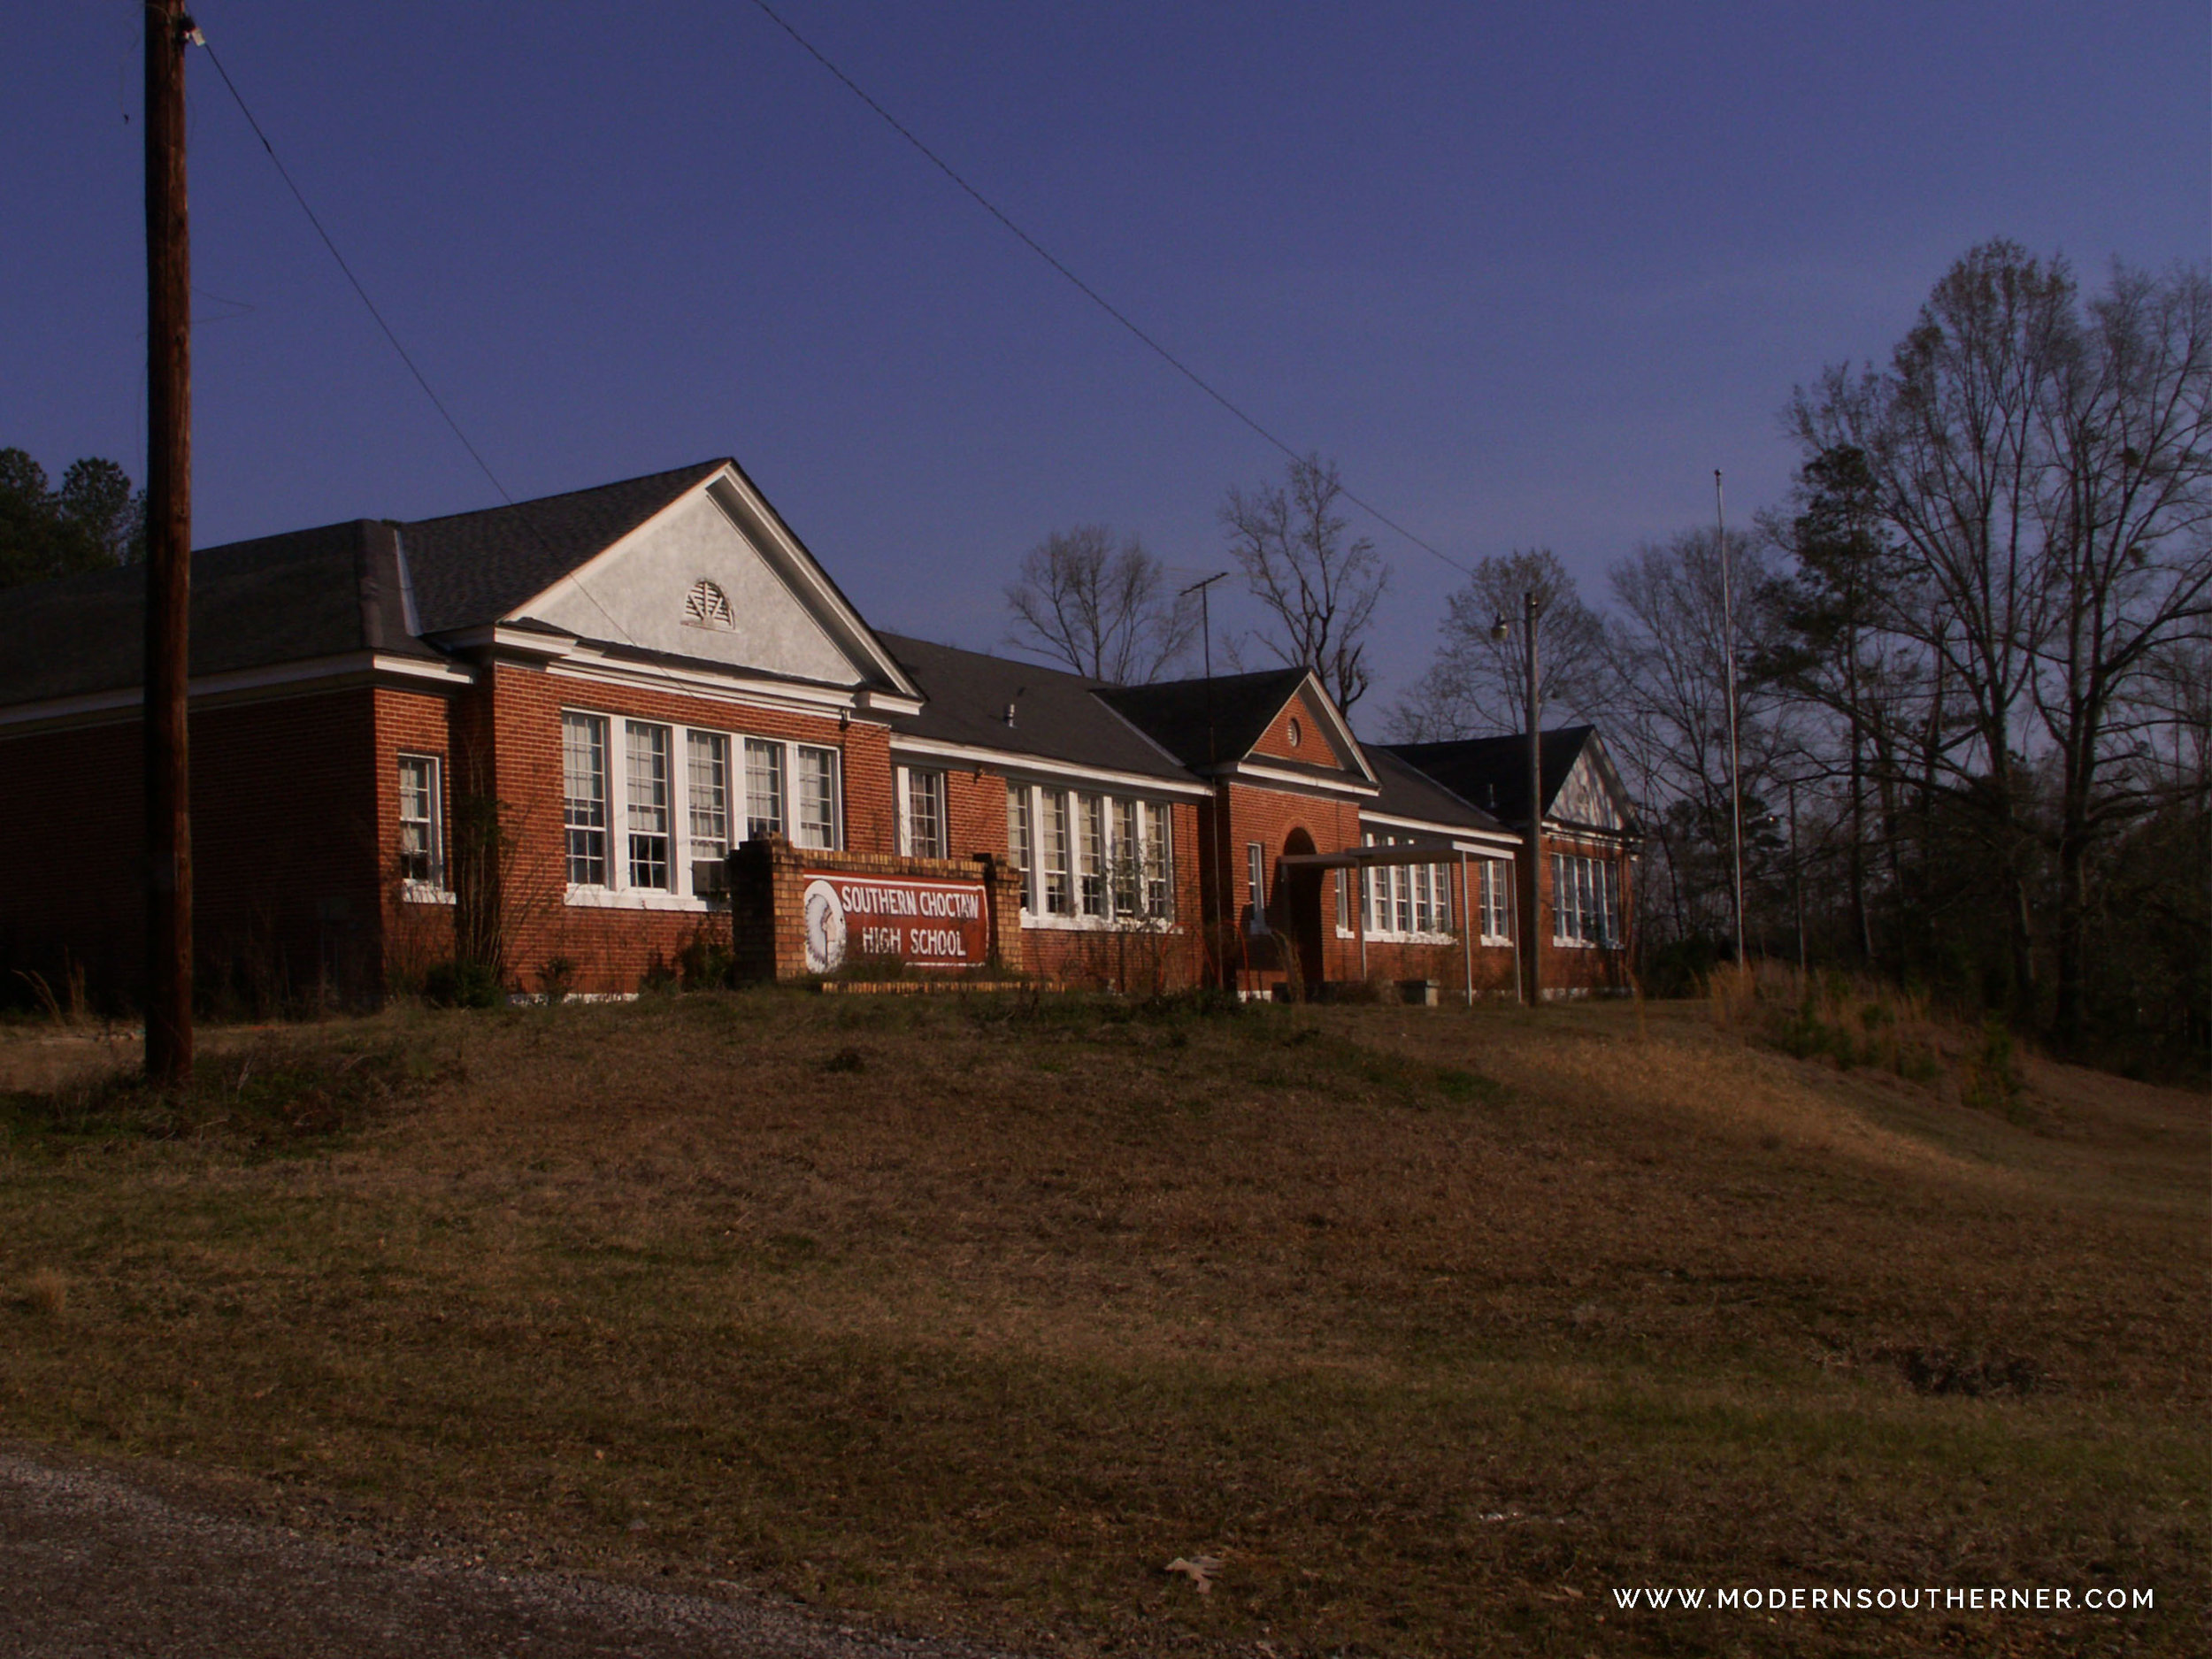 Abandoned Southern Choctaw High School in Alabama